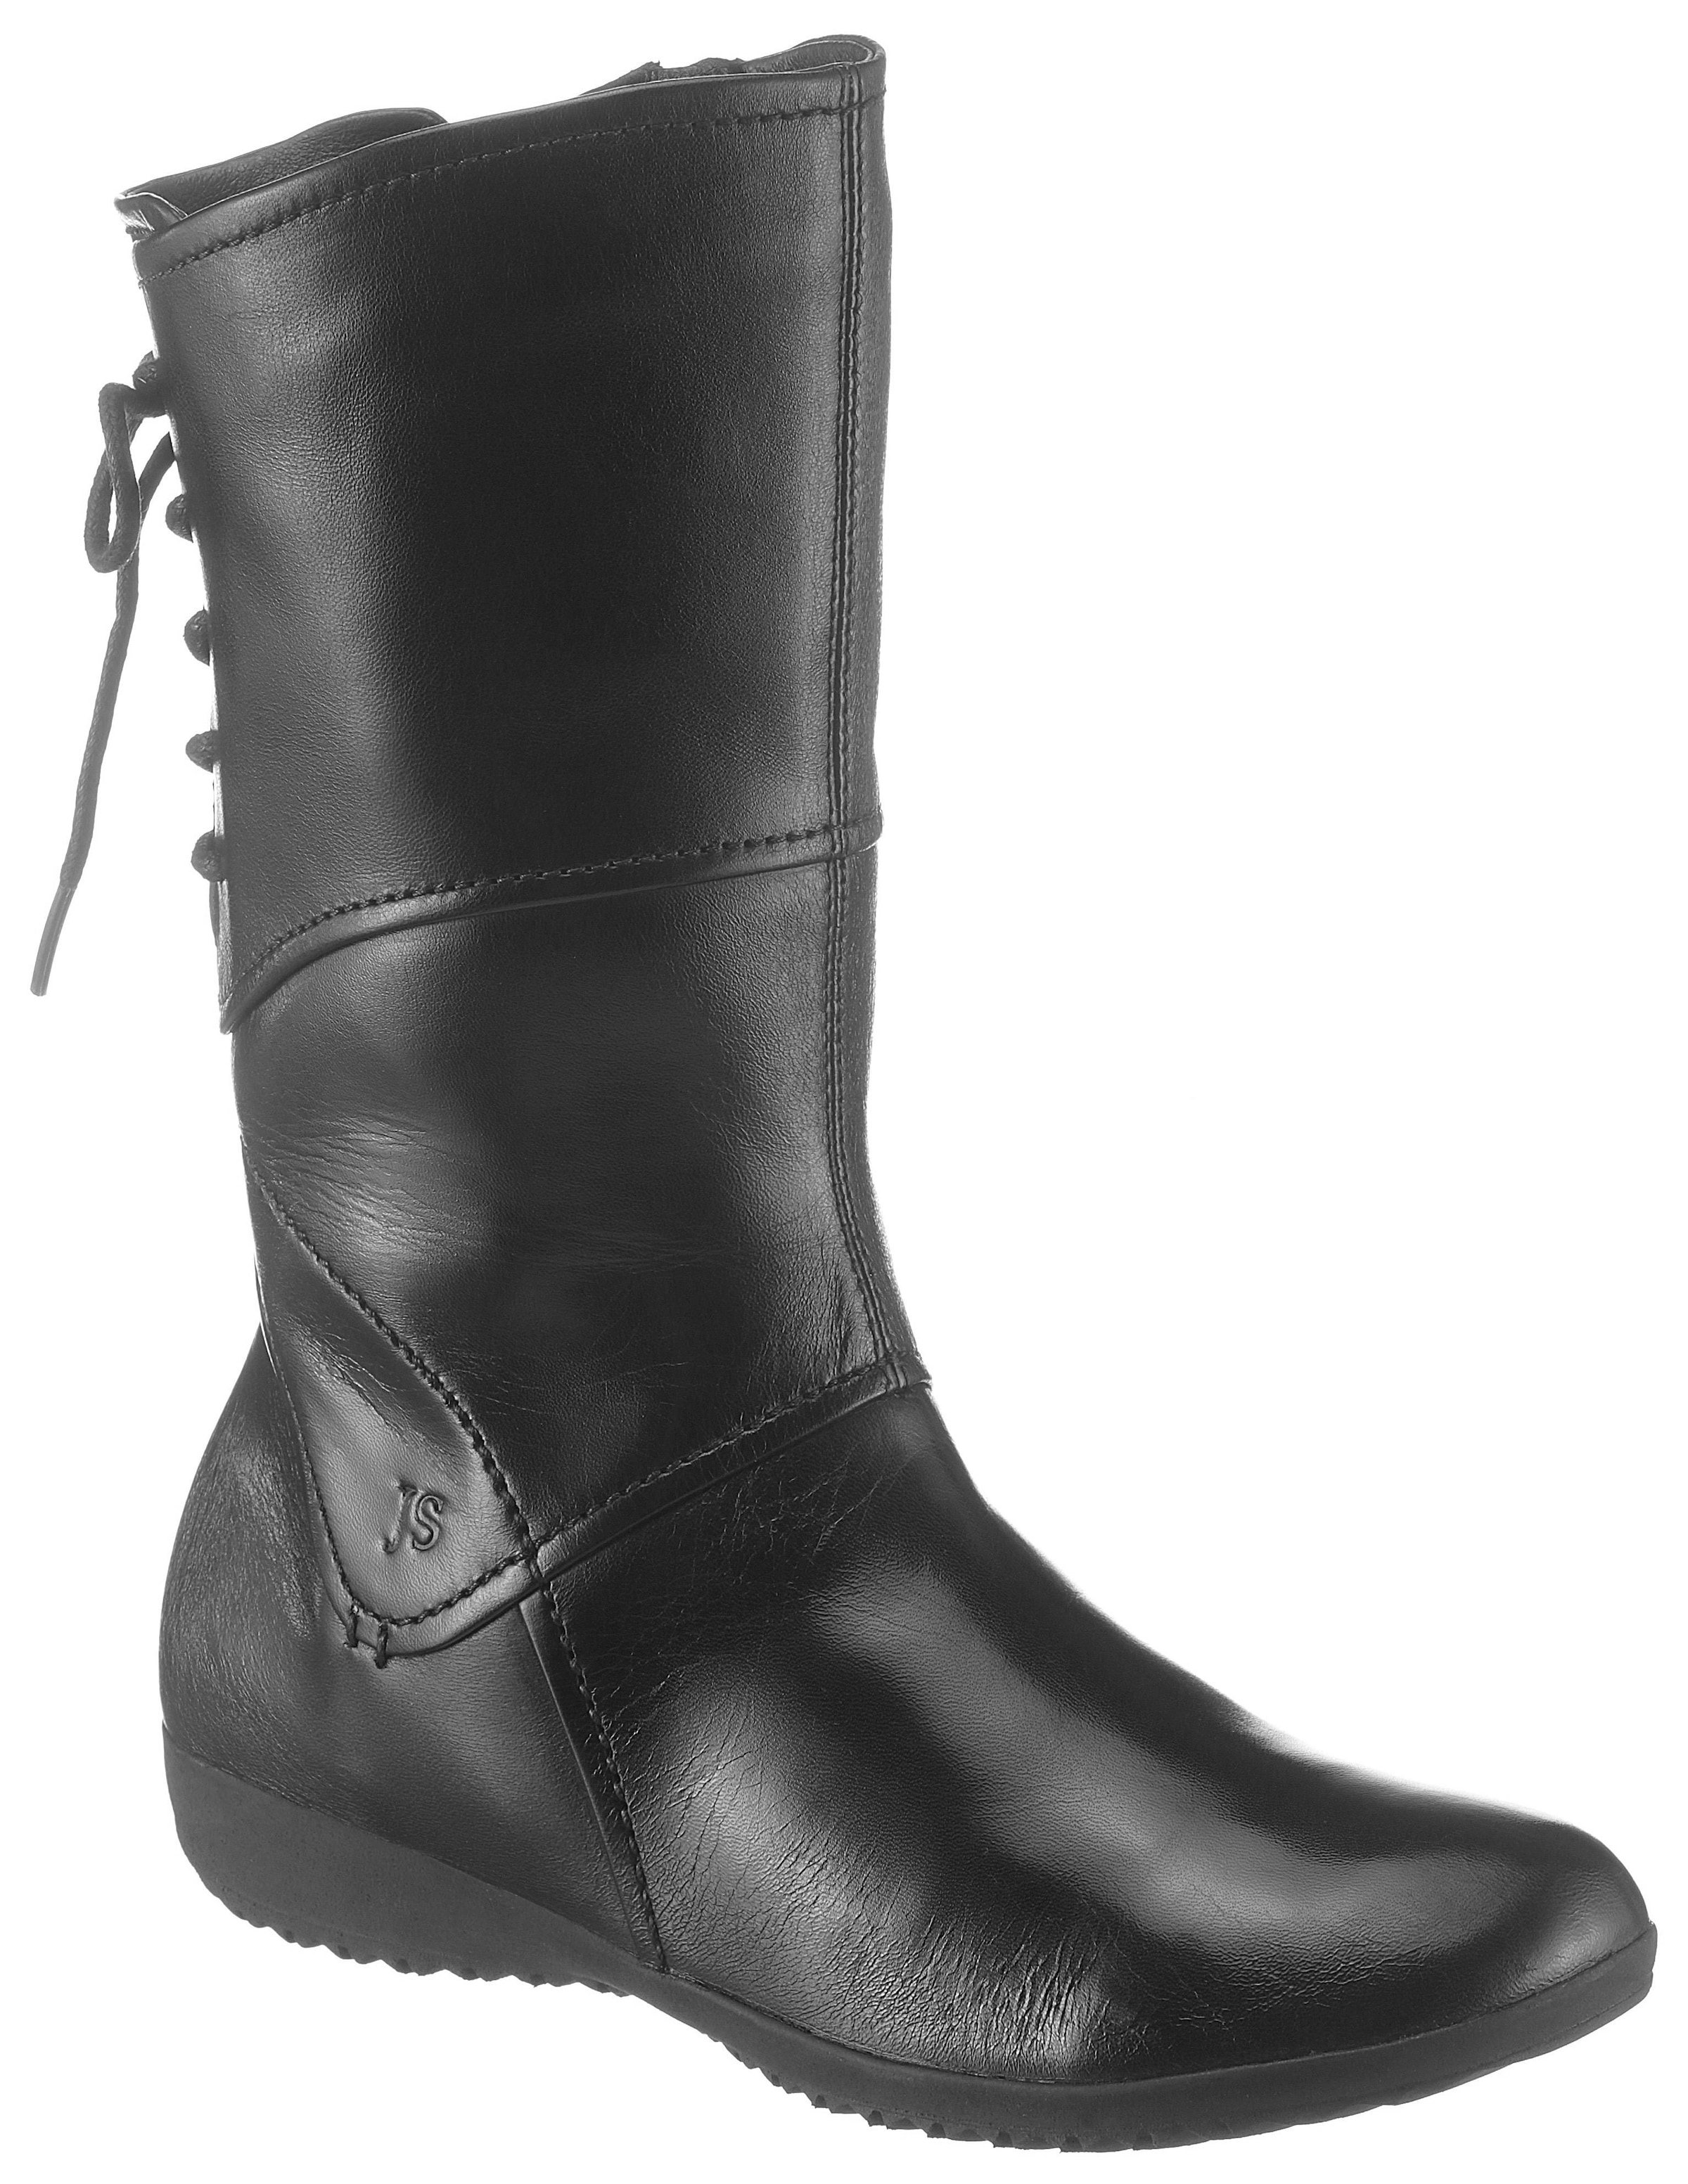 NALY 07 LADIES CASUAL BOOT